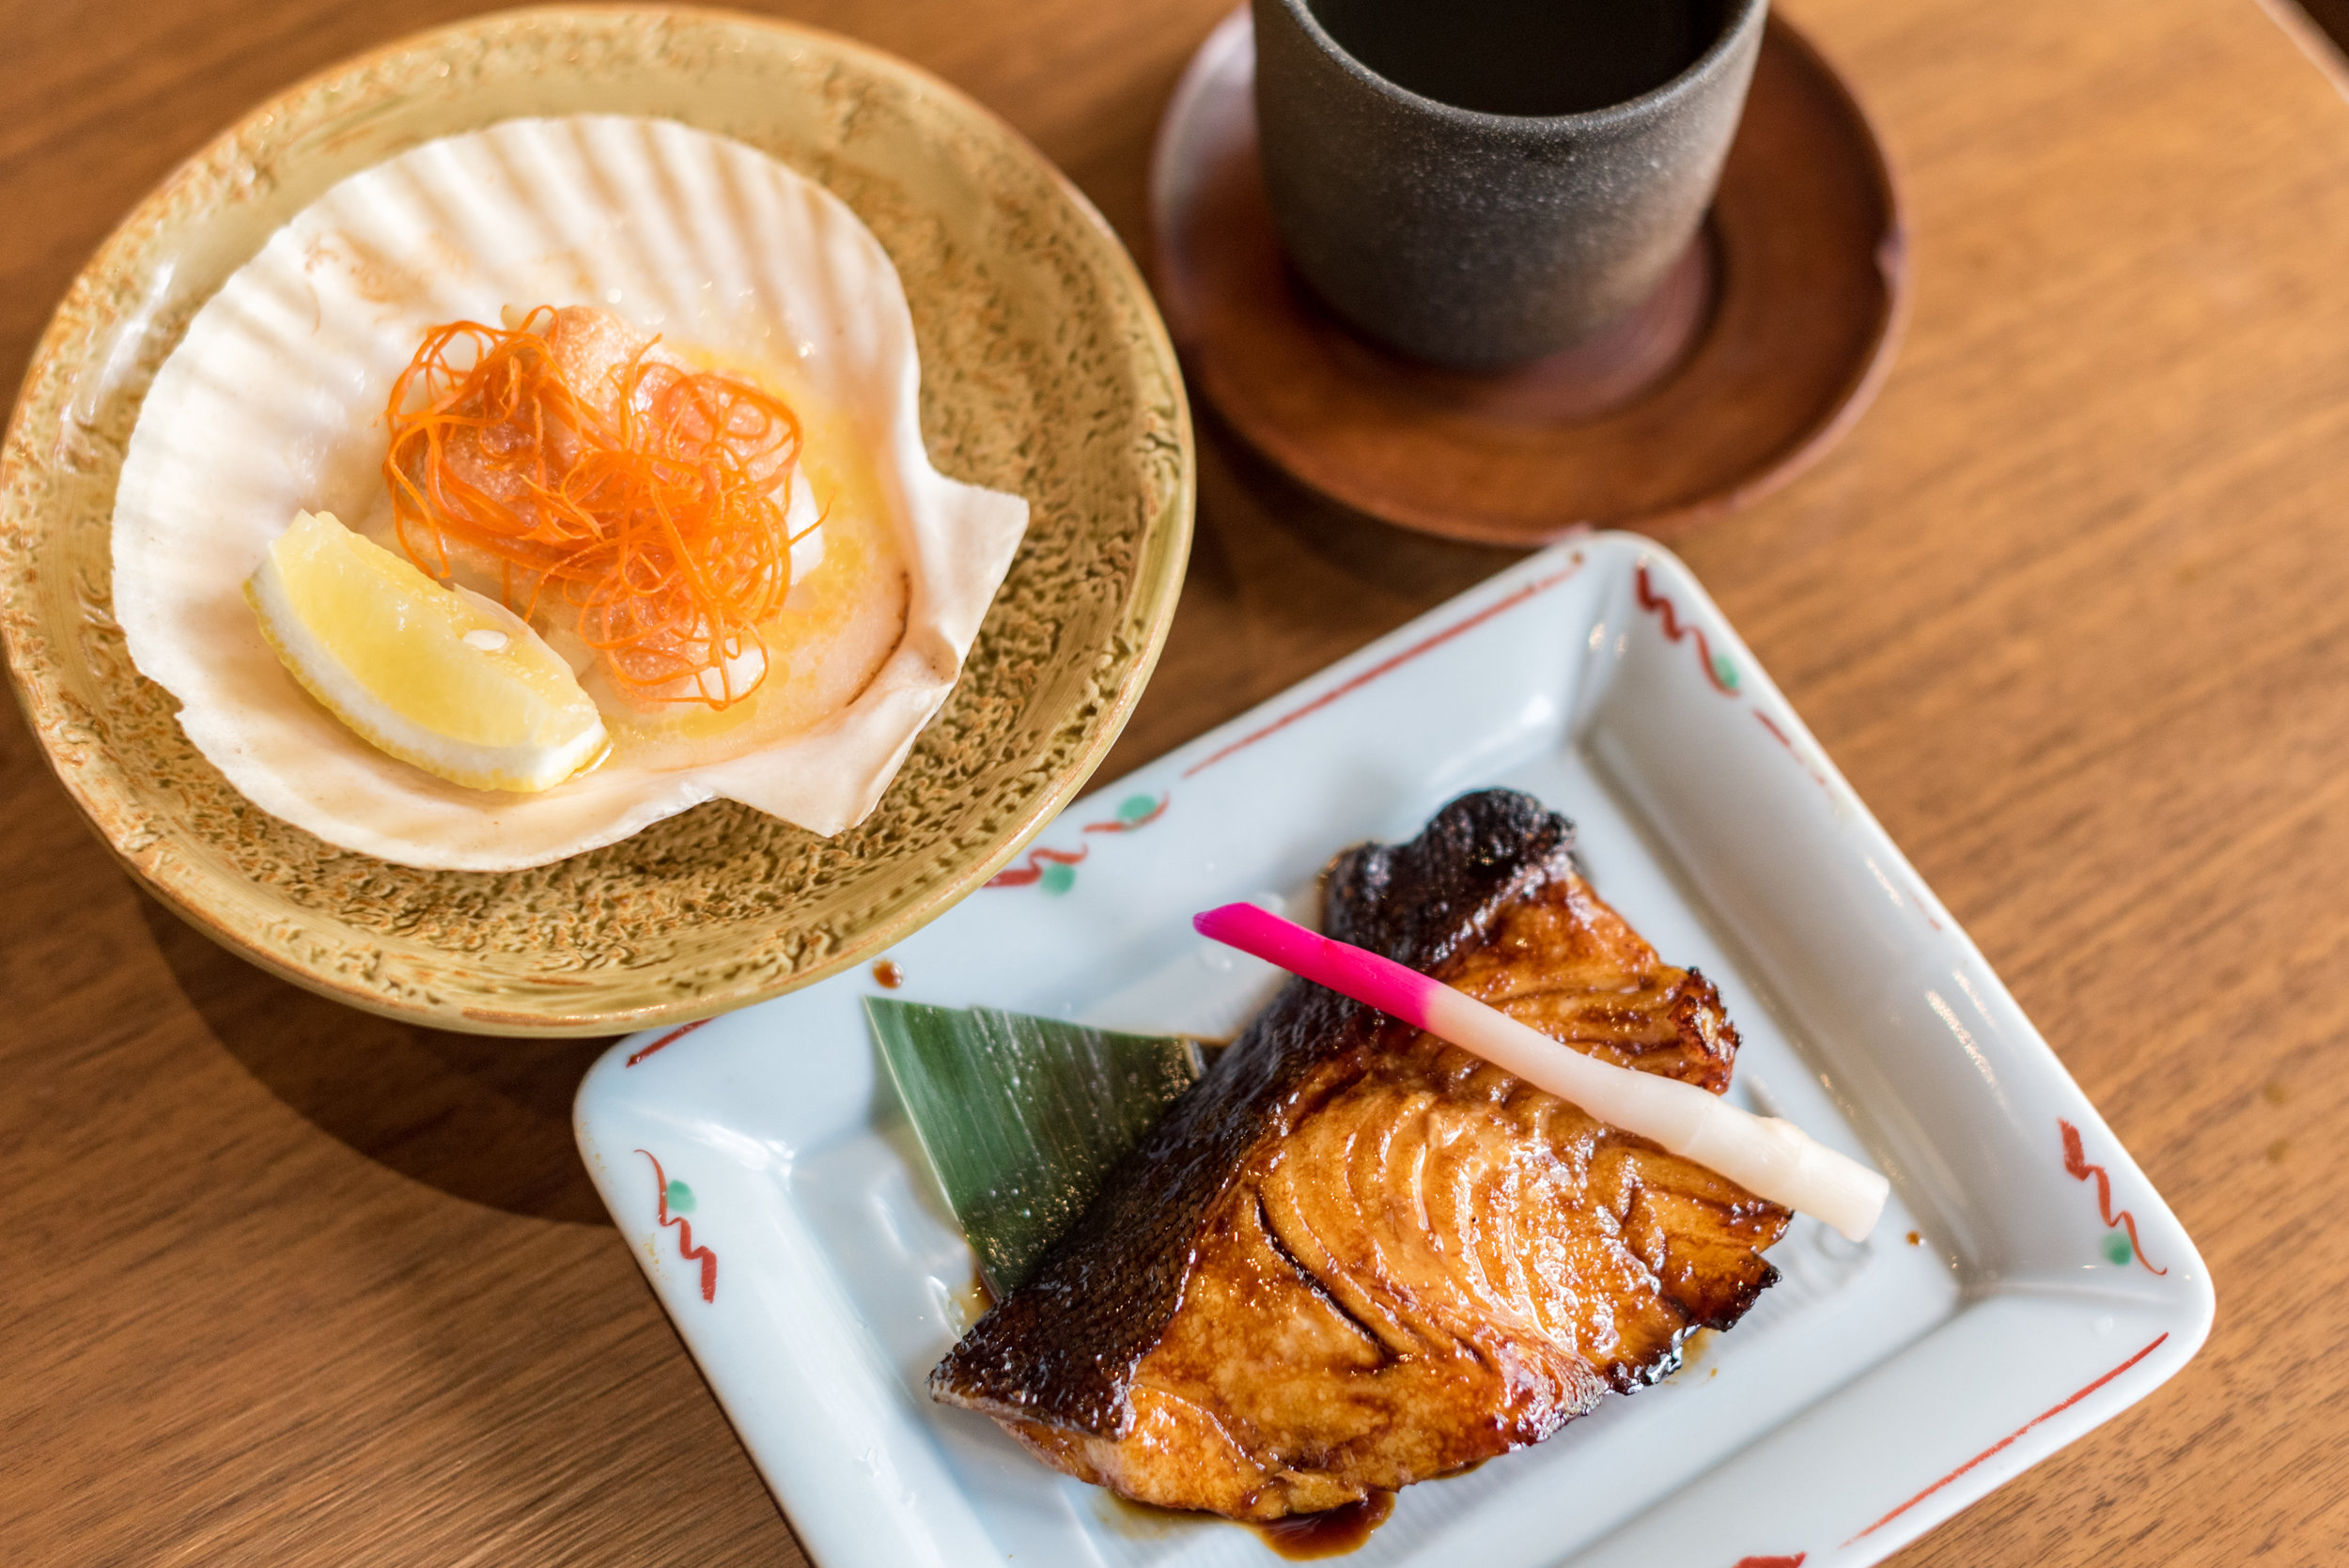 Teriyaki Cod and Grilled Scallops with Spicy Cod Roe Sauce - Bubbly Brunch Keyaki - Pan Pacific Singapore